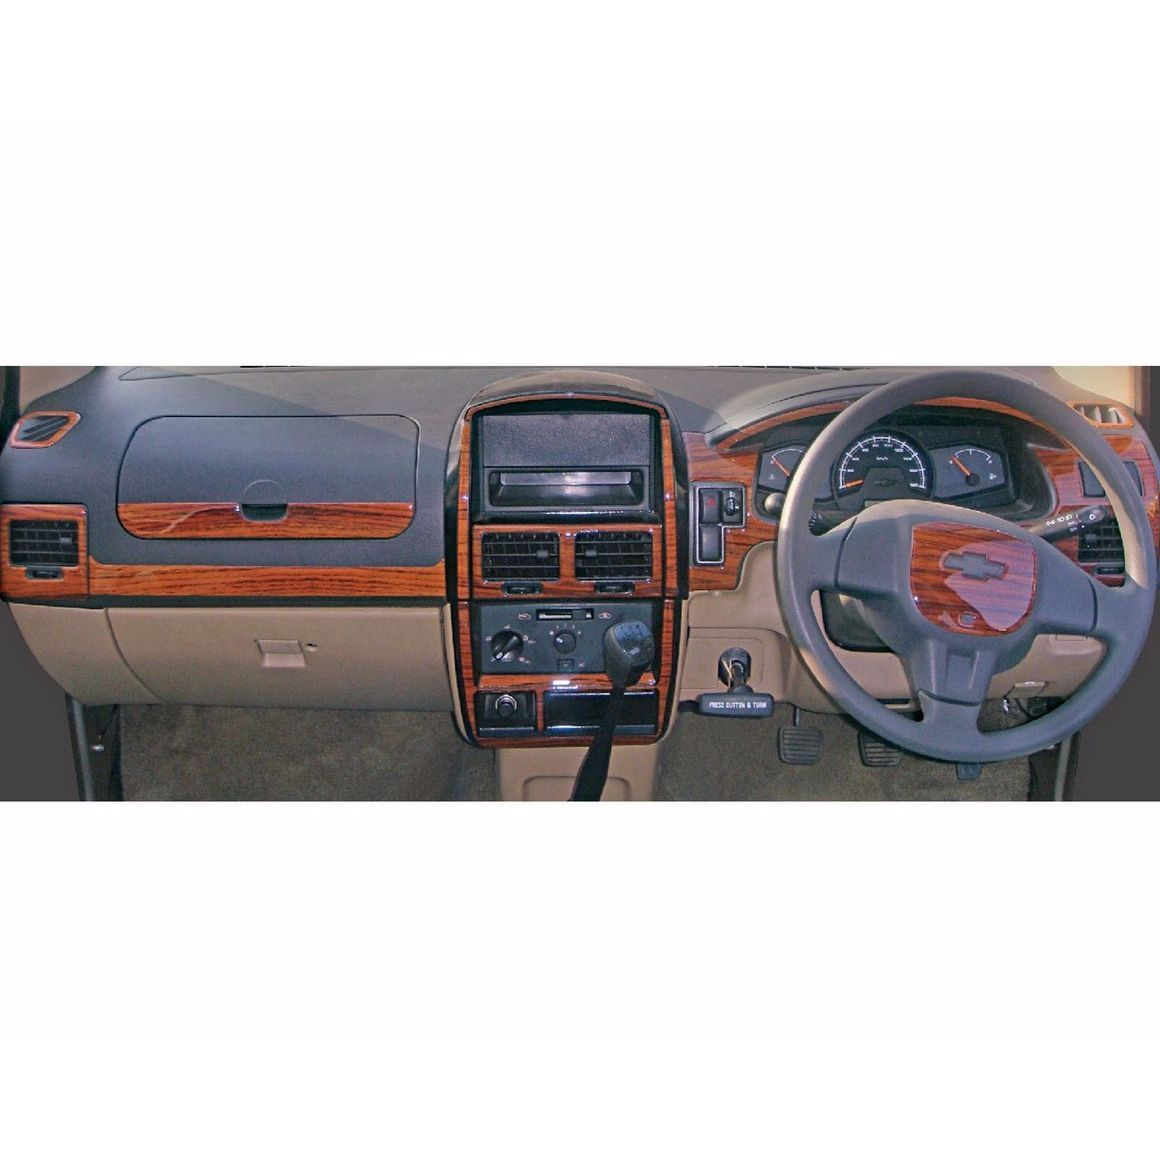 Autographix Basic Dashboard Trim For Chevrolet Tavera Body Vehicles